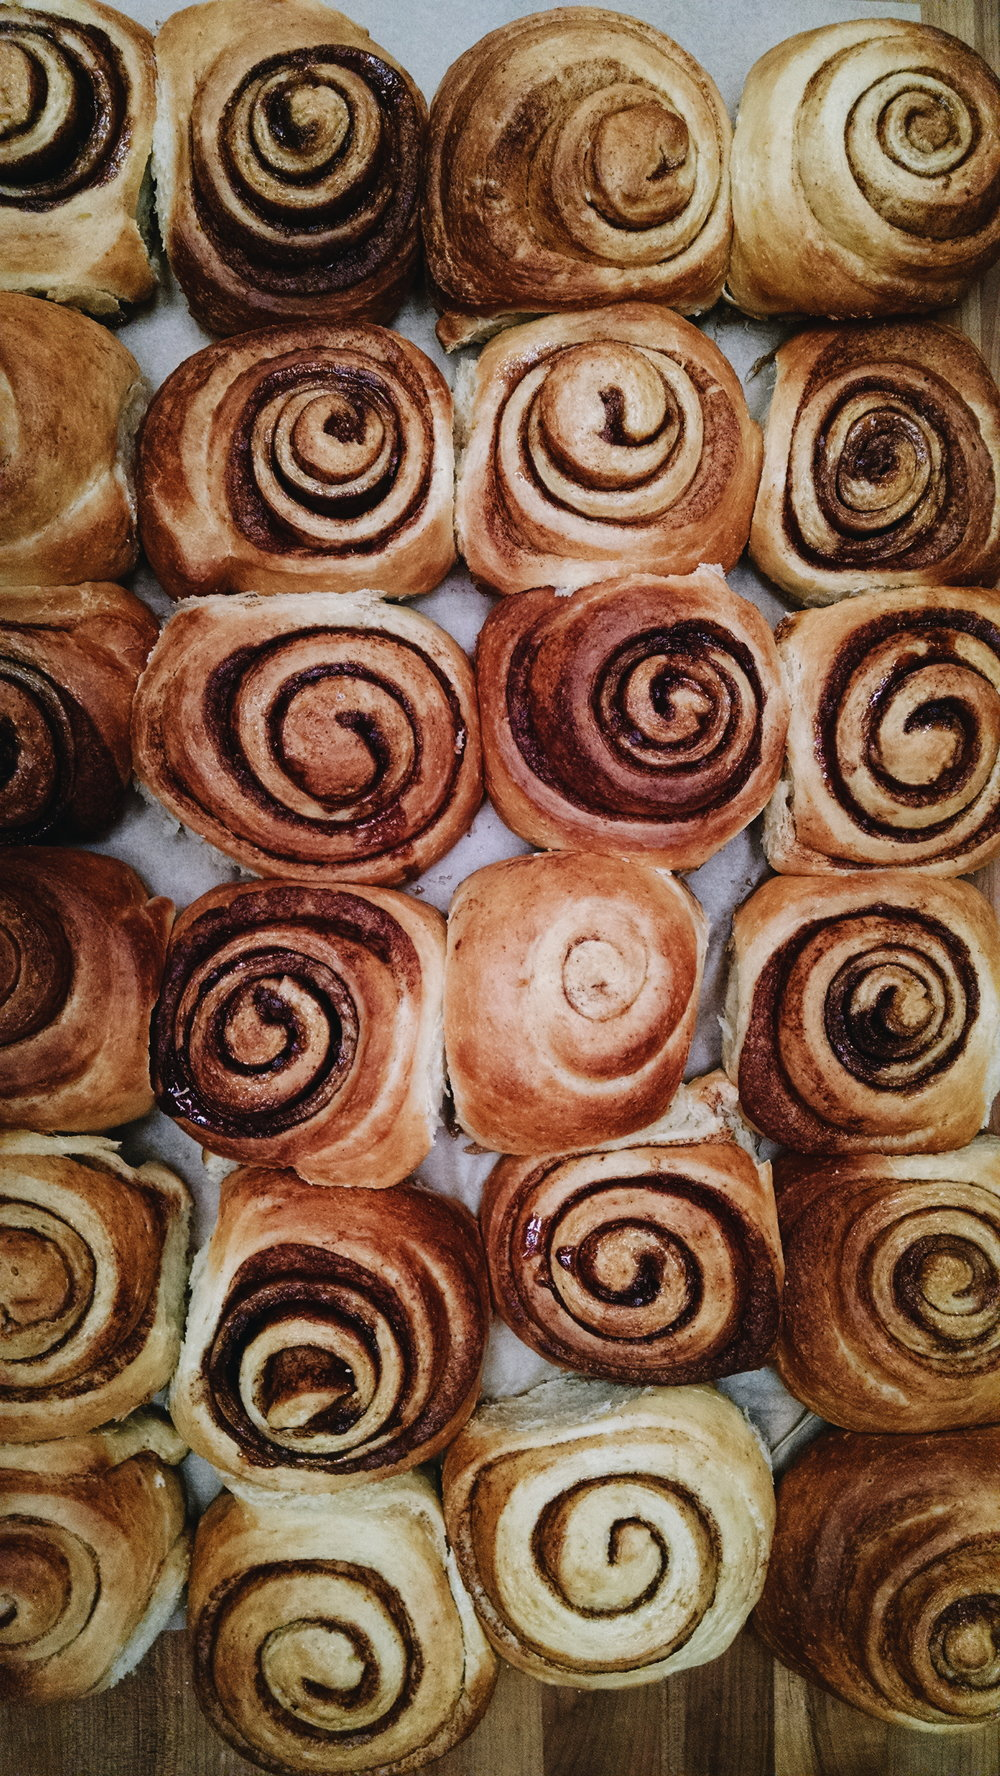 Cinnamon rolls waiting to be frosted